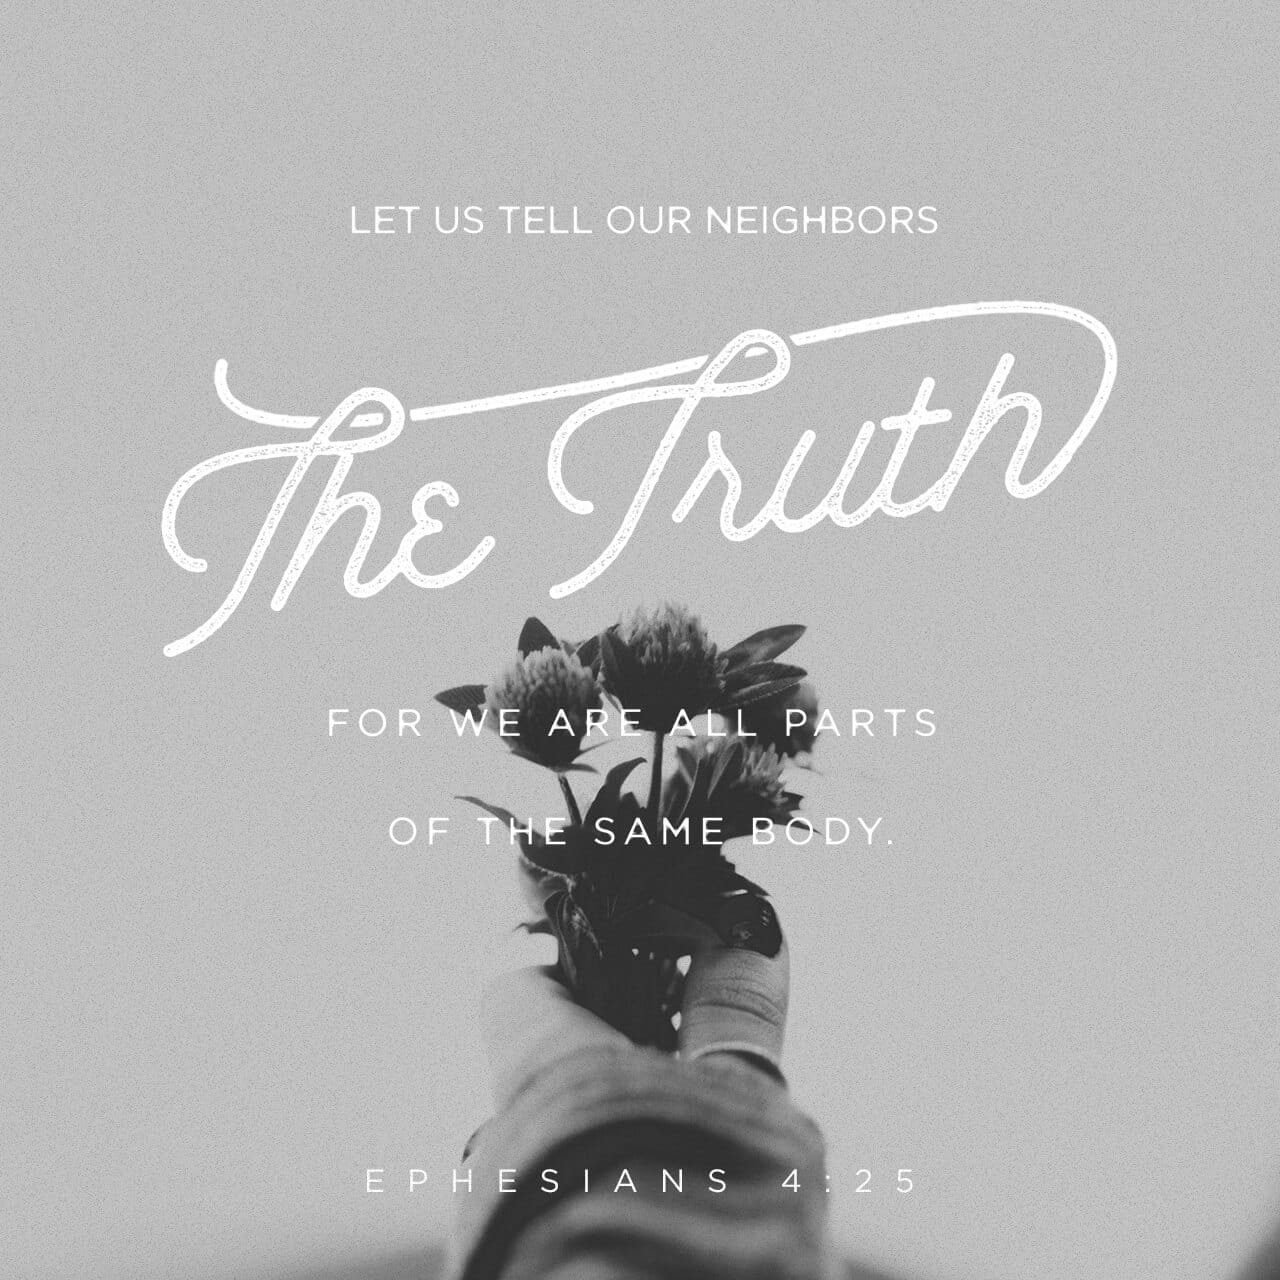 Ephesians 4:25 Wherefore putting away lying, speak every man truth with his neighbour: for we are members one of another. | King James Version (KJV) | Download The Bible App Now